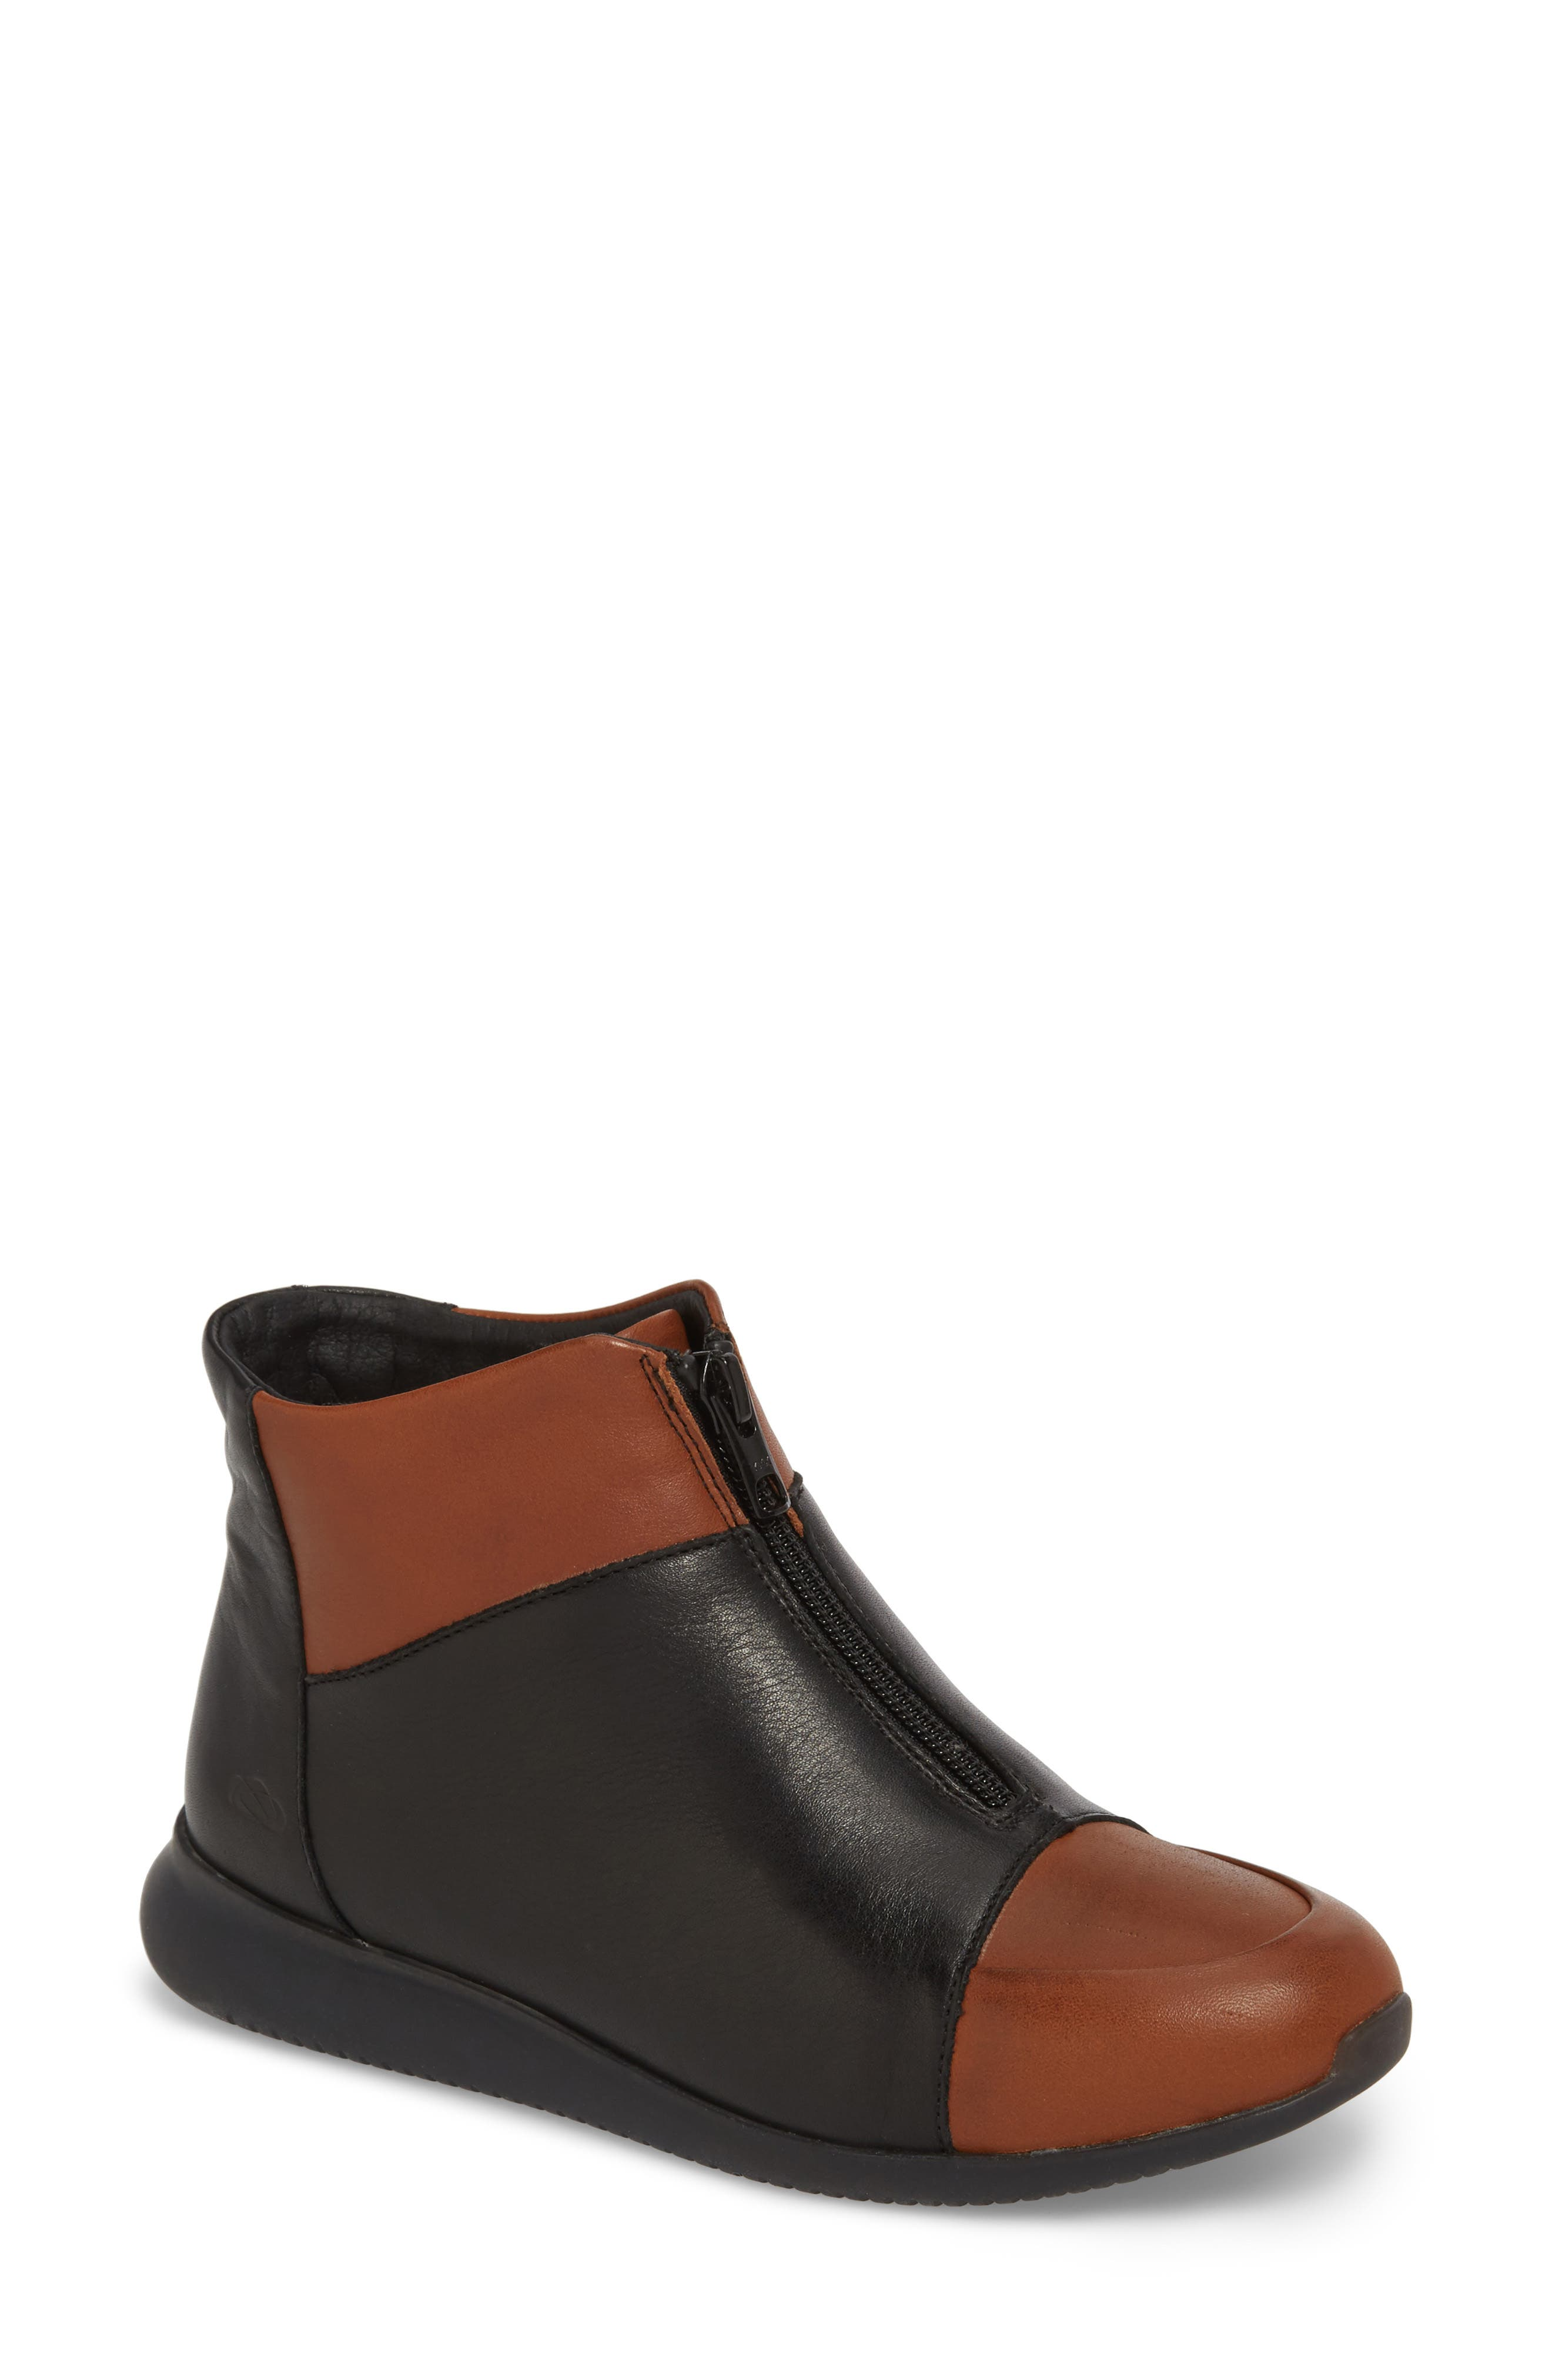 Roy Wool Lined Cap Toe Bootie,                         Main,                         color, Cuoio/ Black Leather